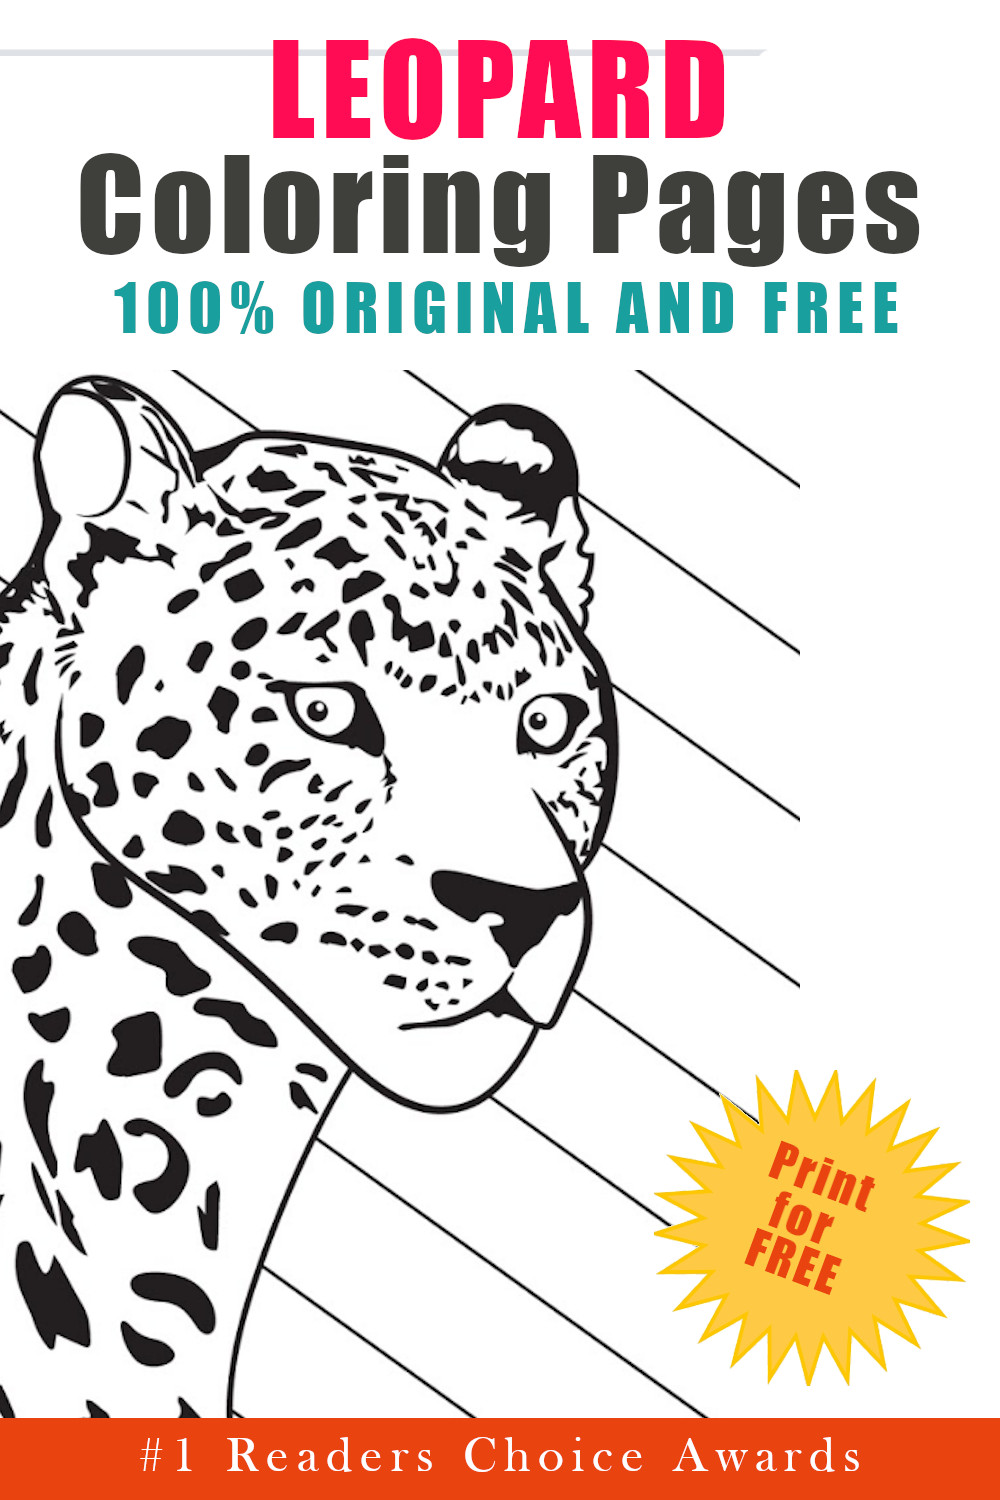 original and free leopard coloring pages